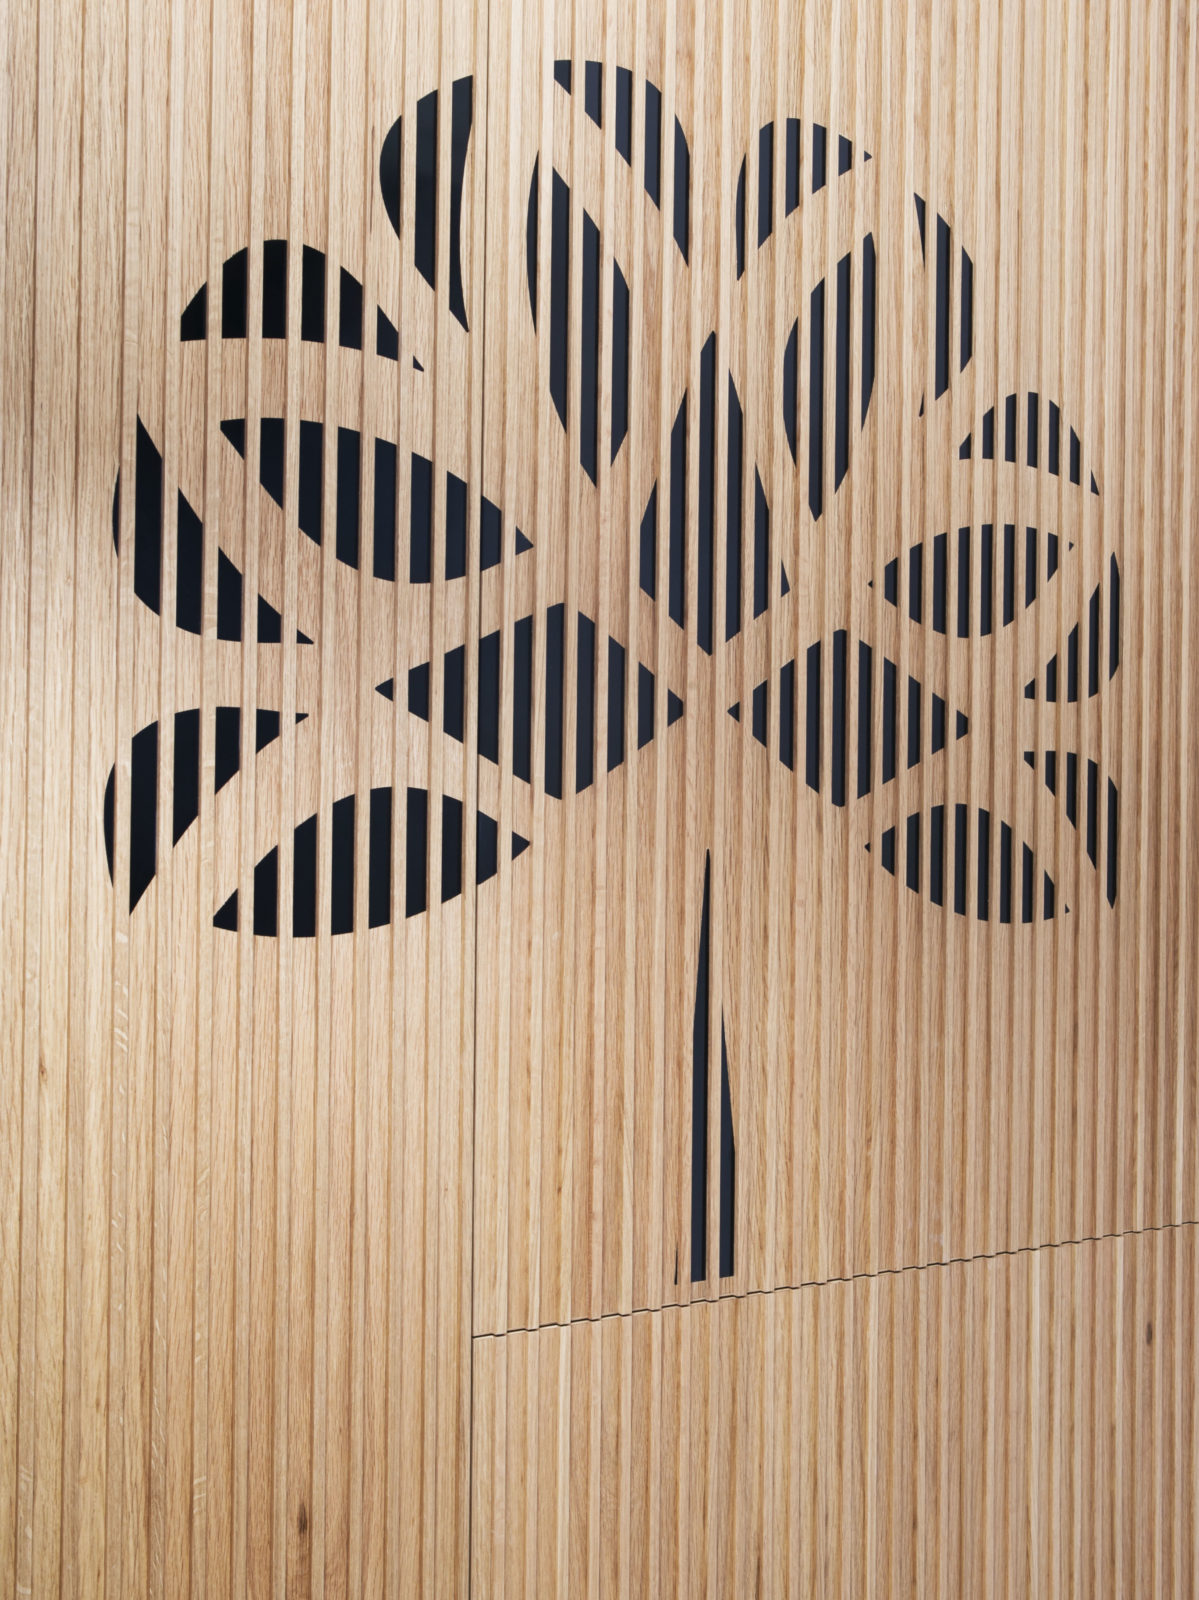 oak doors with black resin logo detail